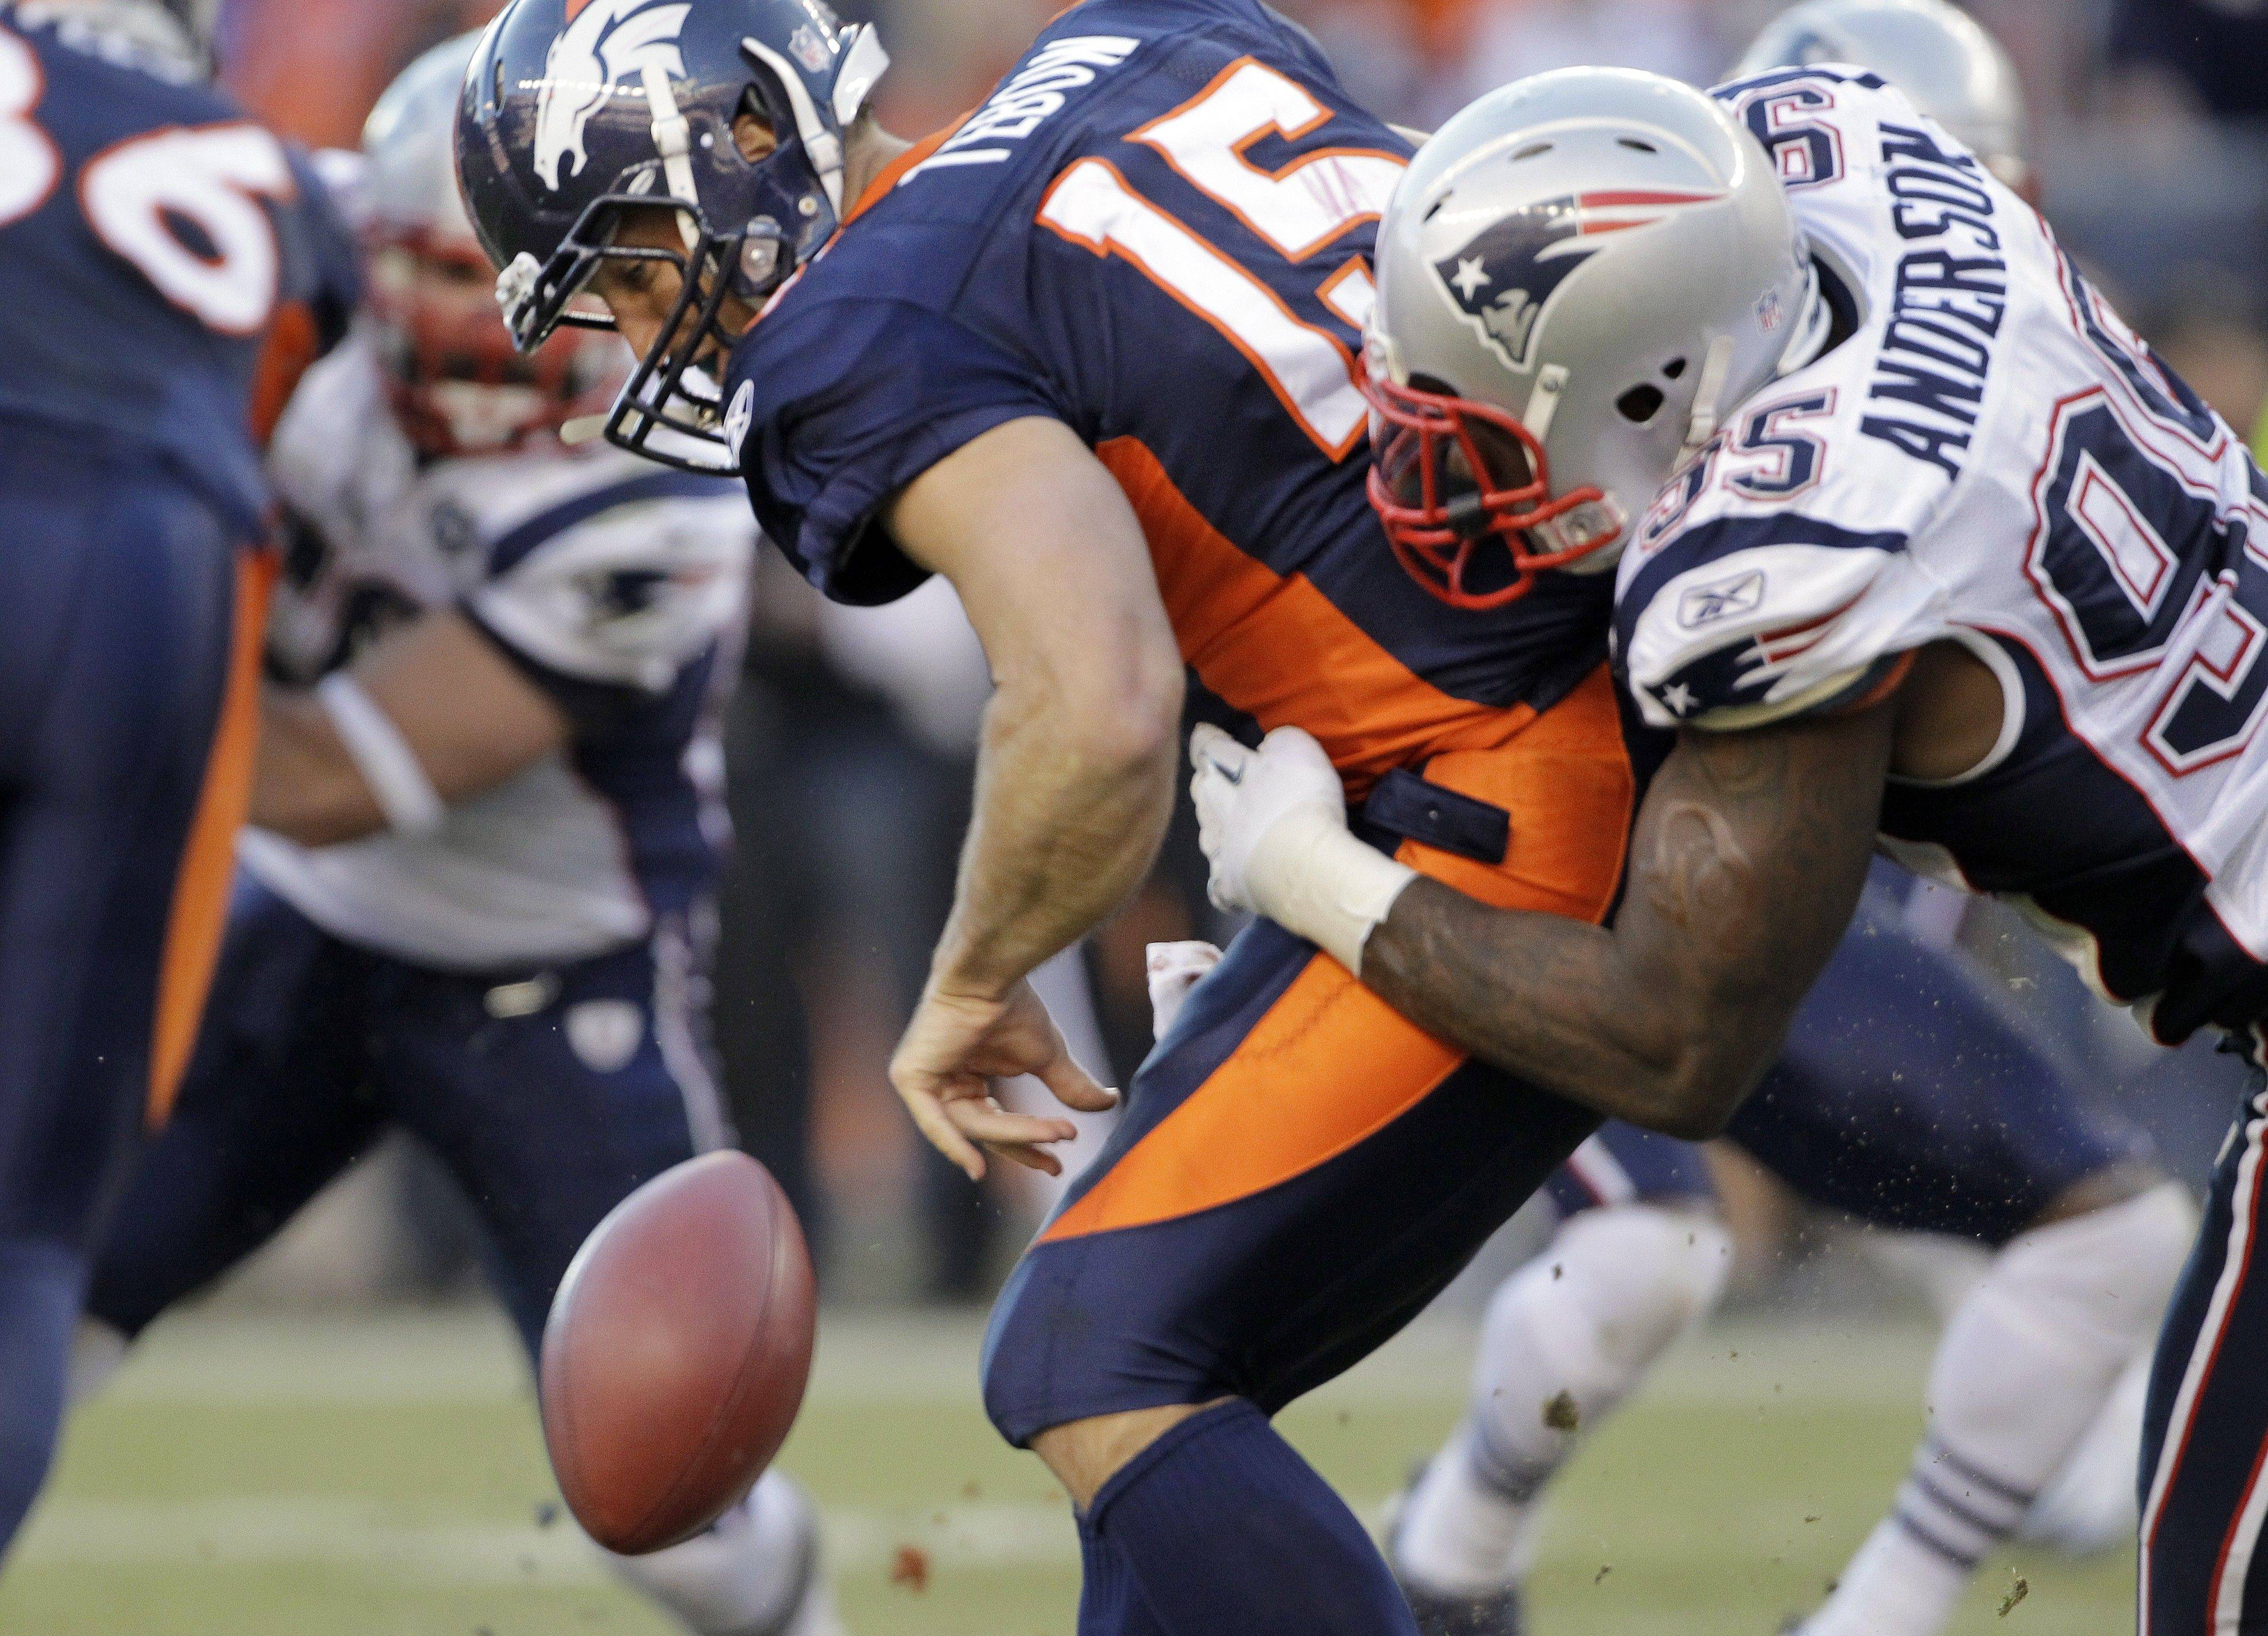 When Denver and New England played last month, former Chicago Bears defensive end Mark Anderson (95) forced a fumble by Tim Tebow. Anderson had 10 sacks this season.